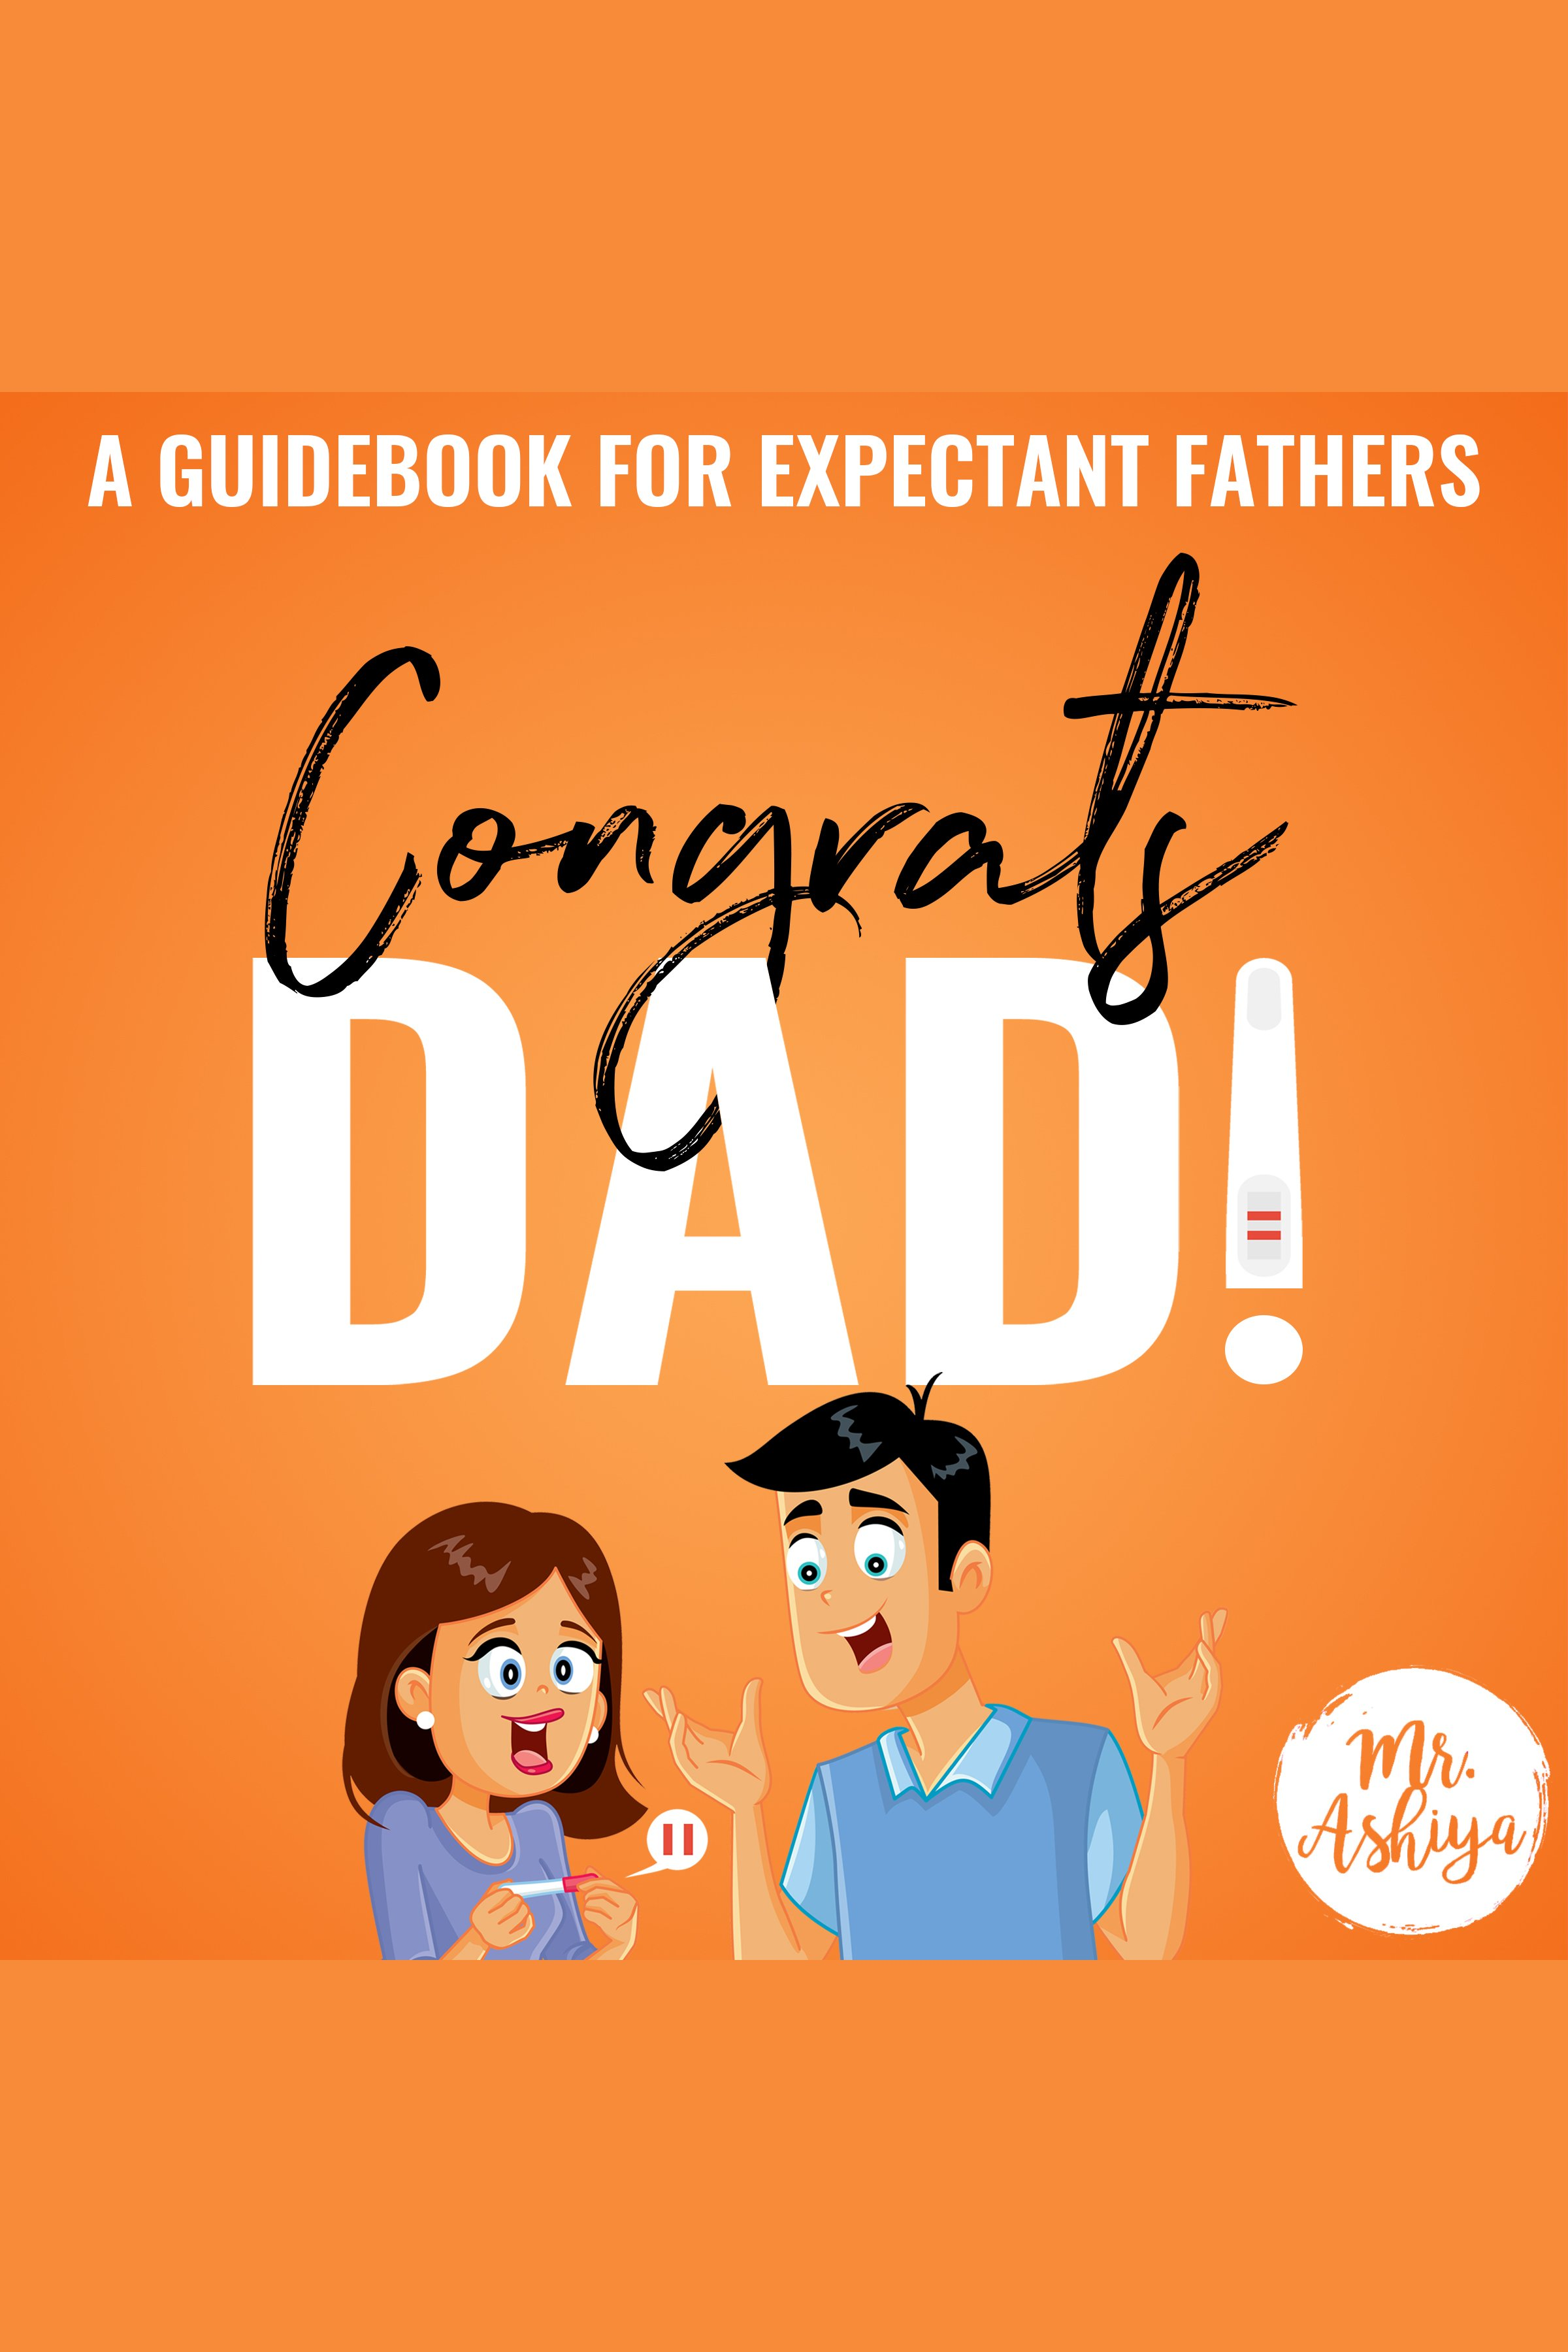 Congrats Dad! A Guidebook For Expectant Fathers